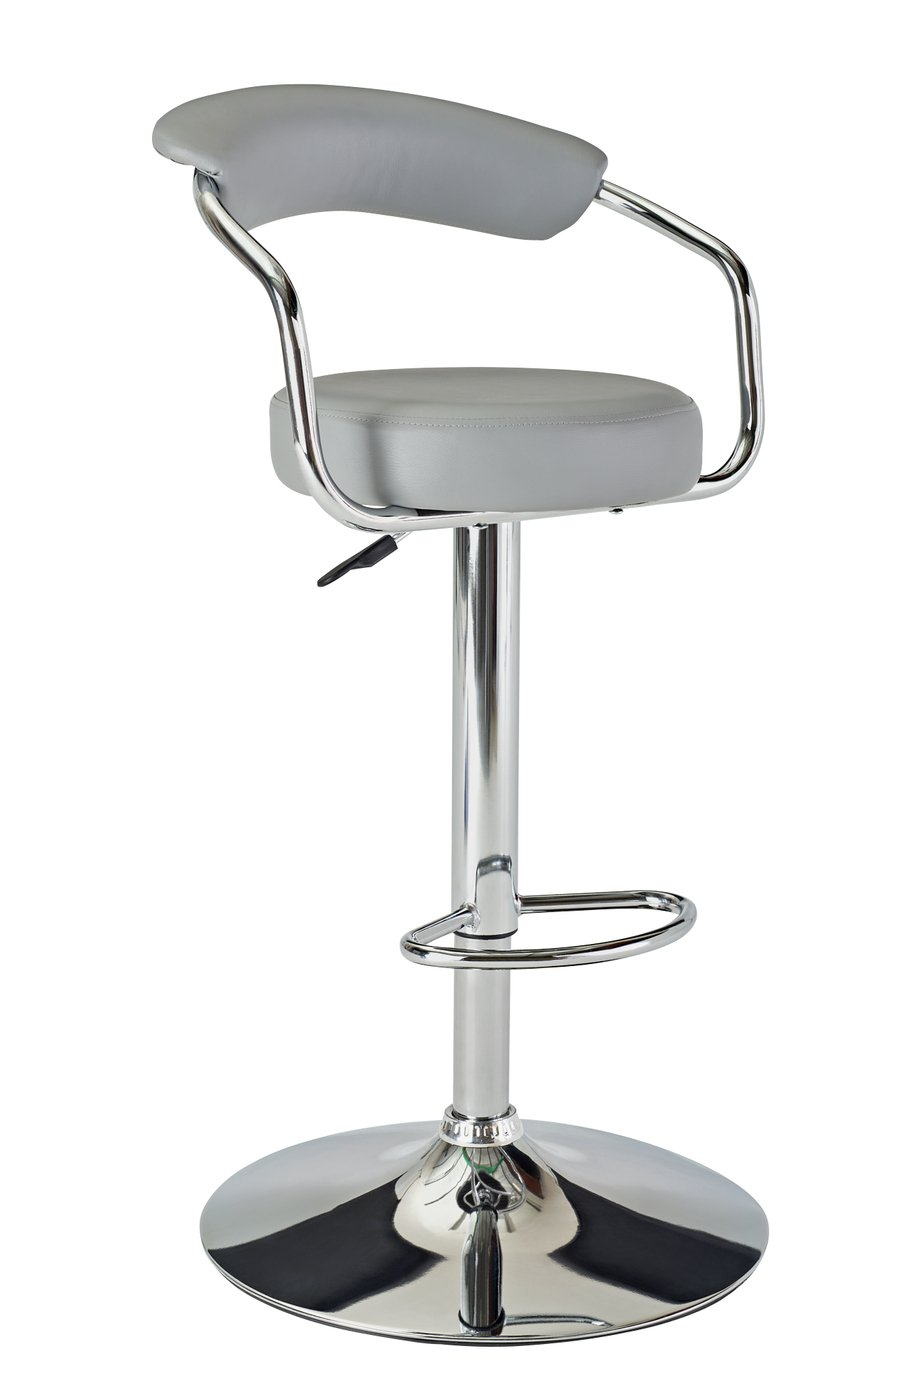 Argos Home Executive Gas Lift Bar Stool with Back Rest- Grey